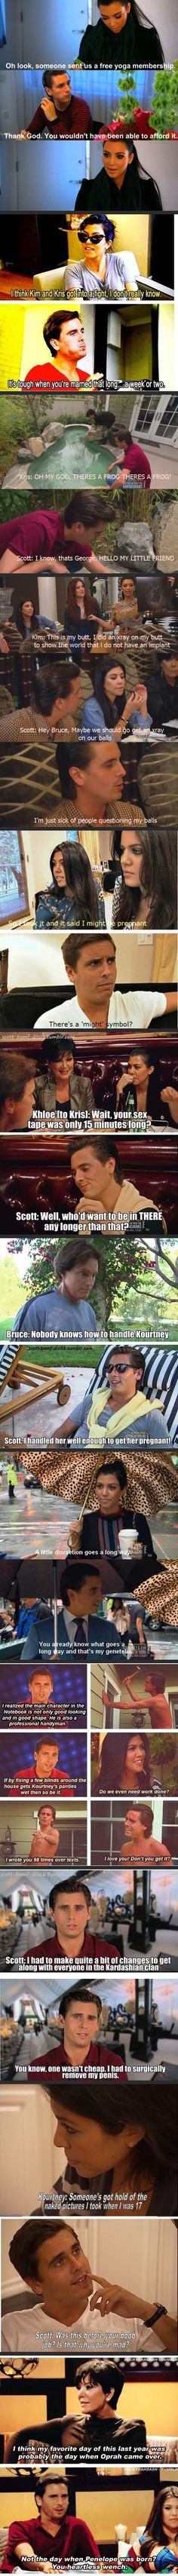 Scott Disick: without a doubt, the most popular Kardashian.